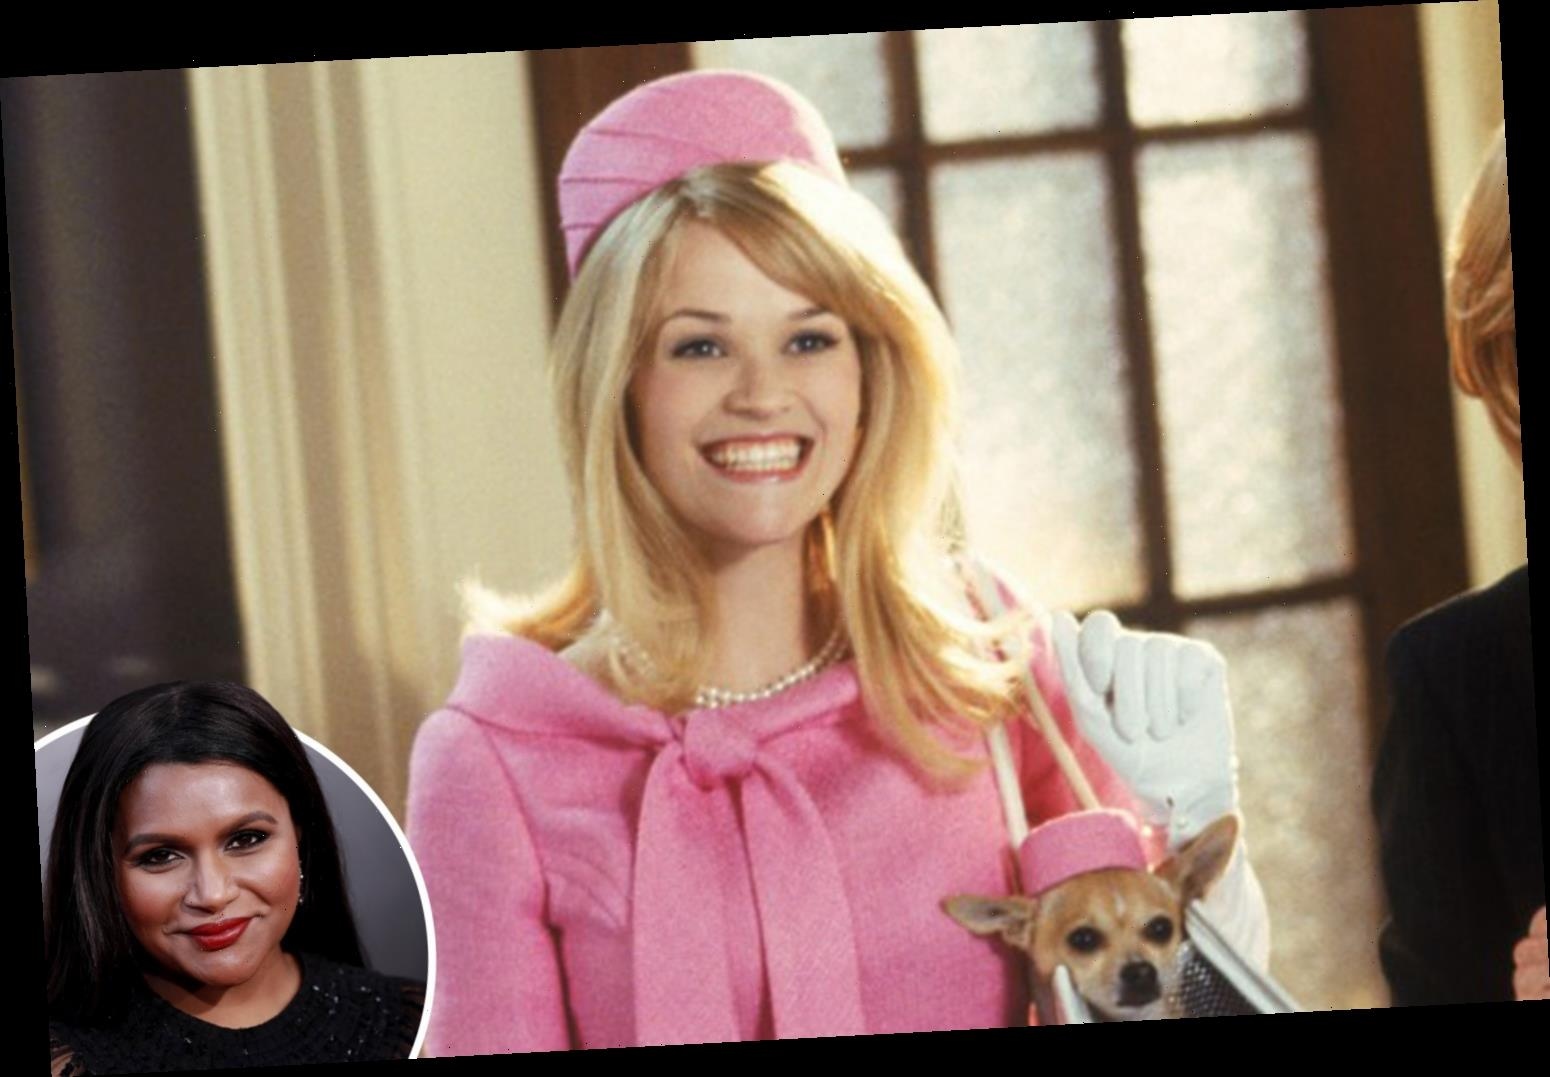 Mindy Kaling reveals what fans can expect from Legally Blonde 3 after actress' surprise baby news